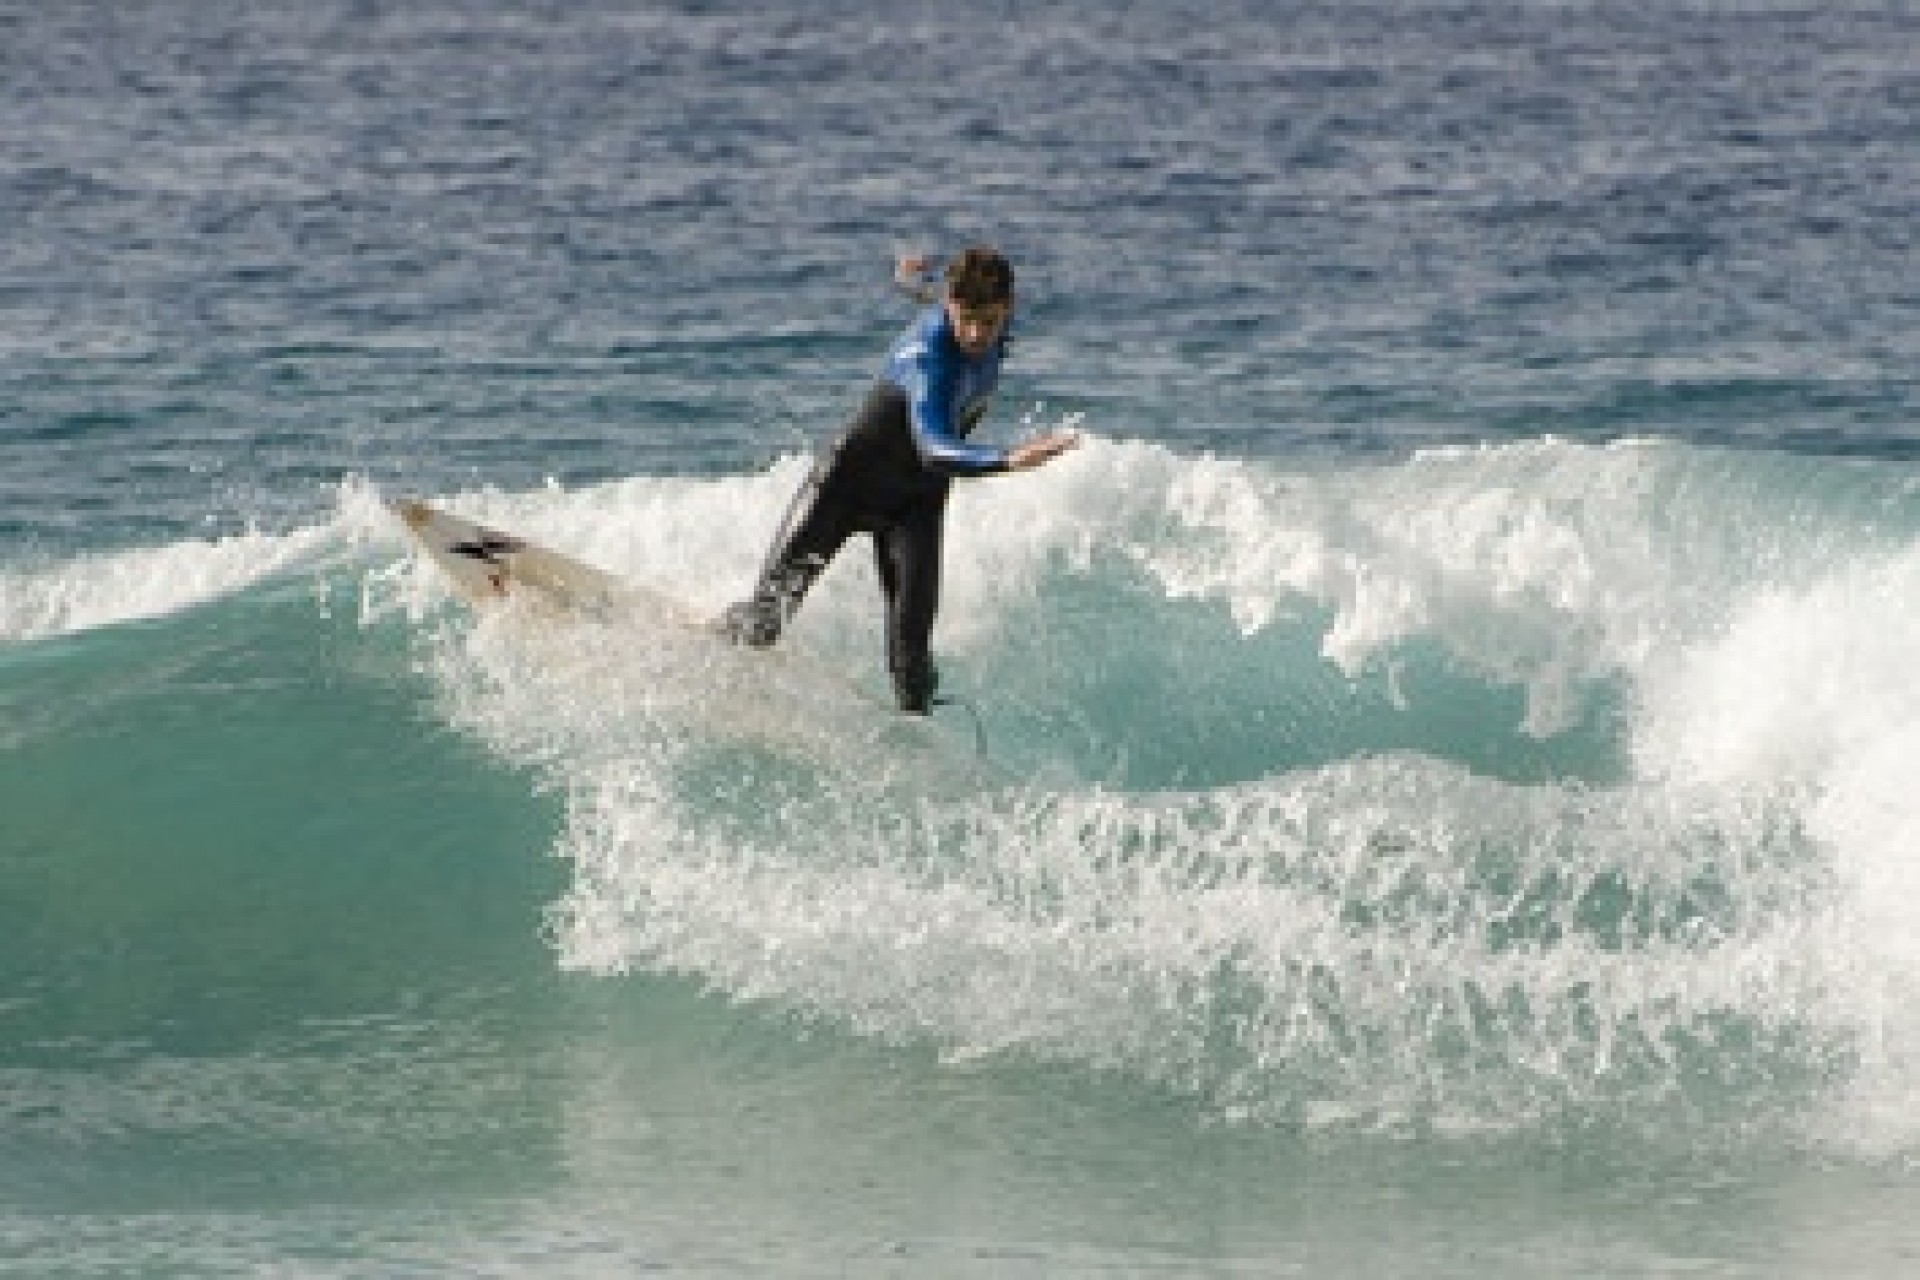 Waveguru Surfschool & Surfcamp's photo of Playa de la Pared